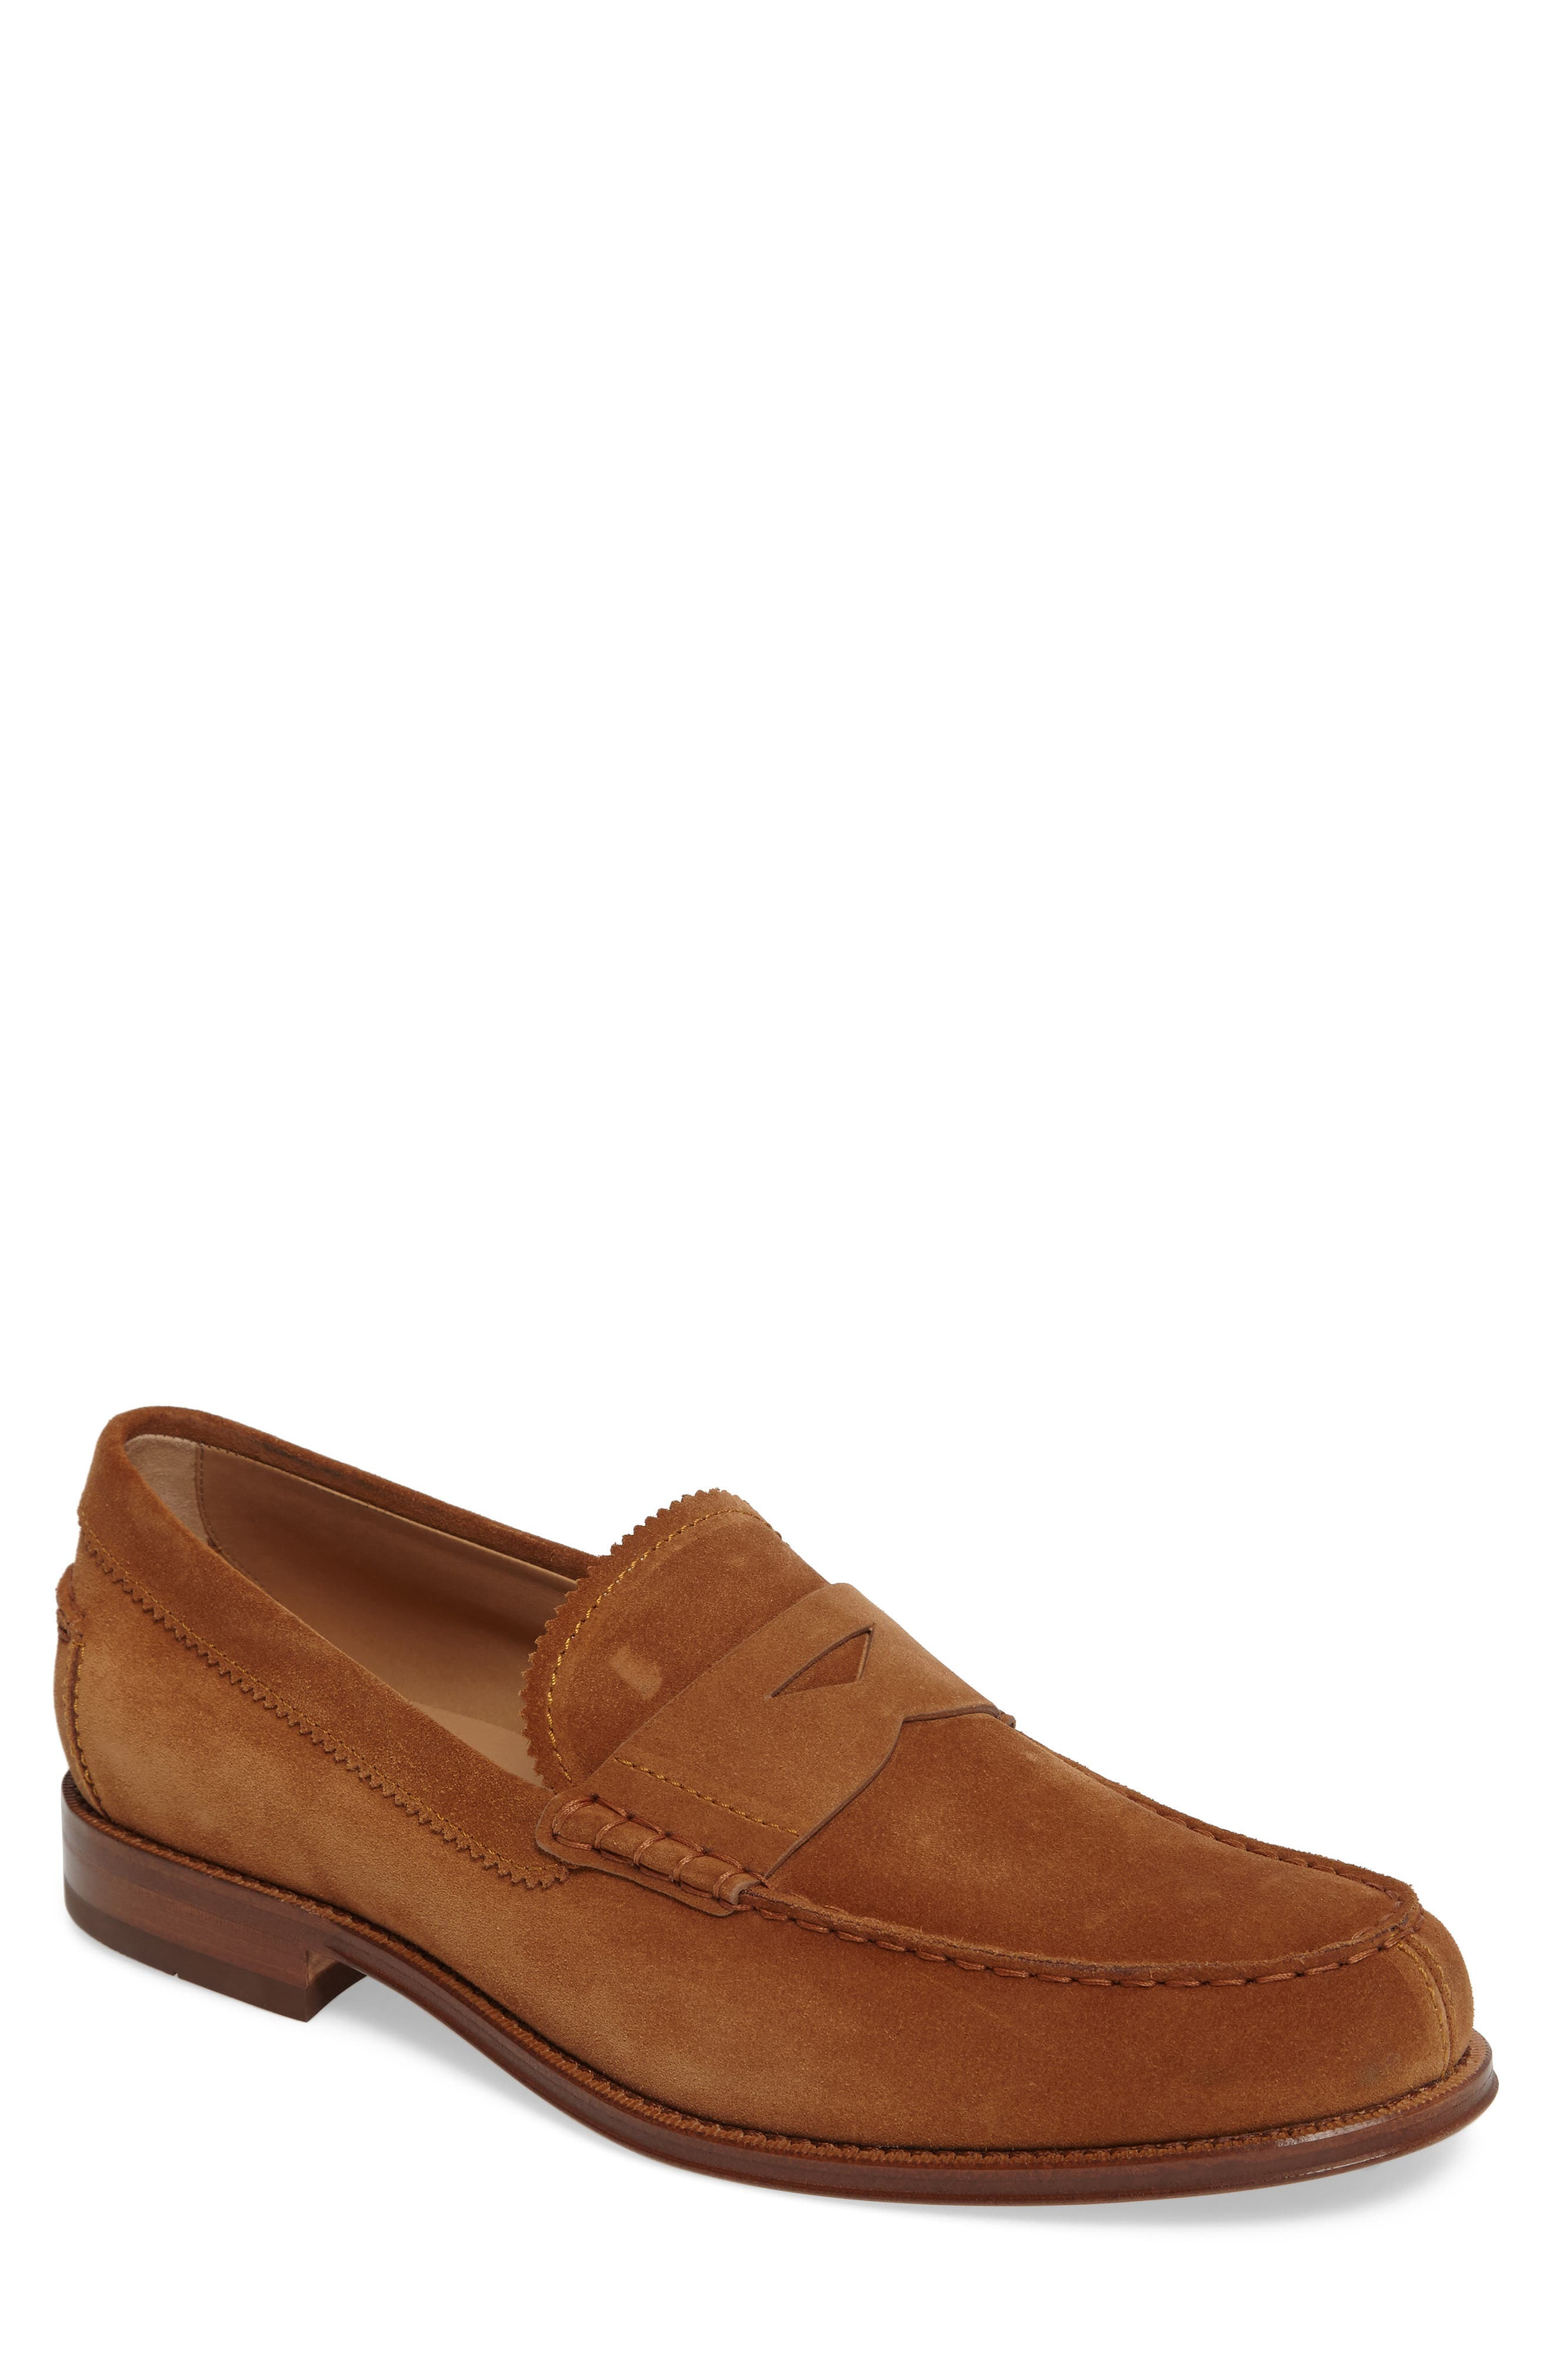 Tod's Suede Penny Loafer (Men)